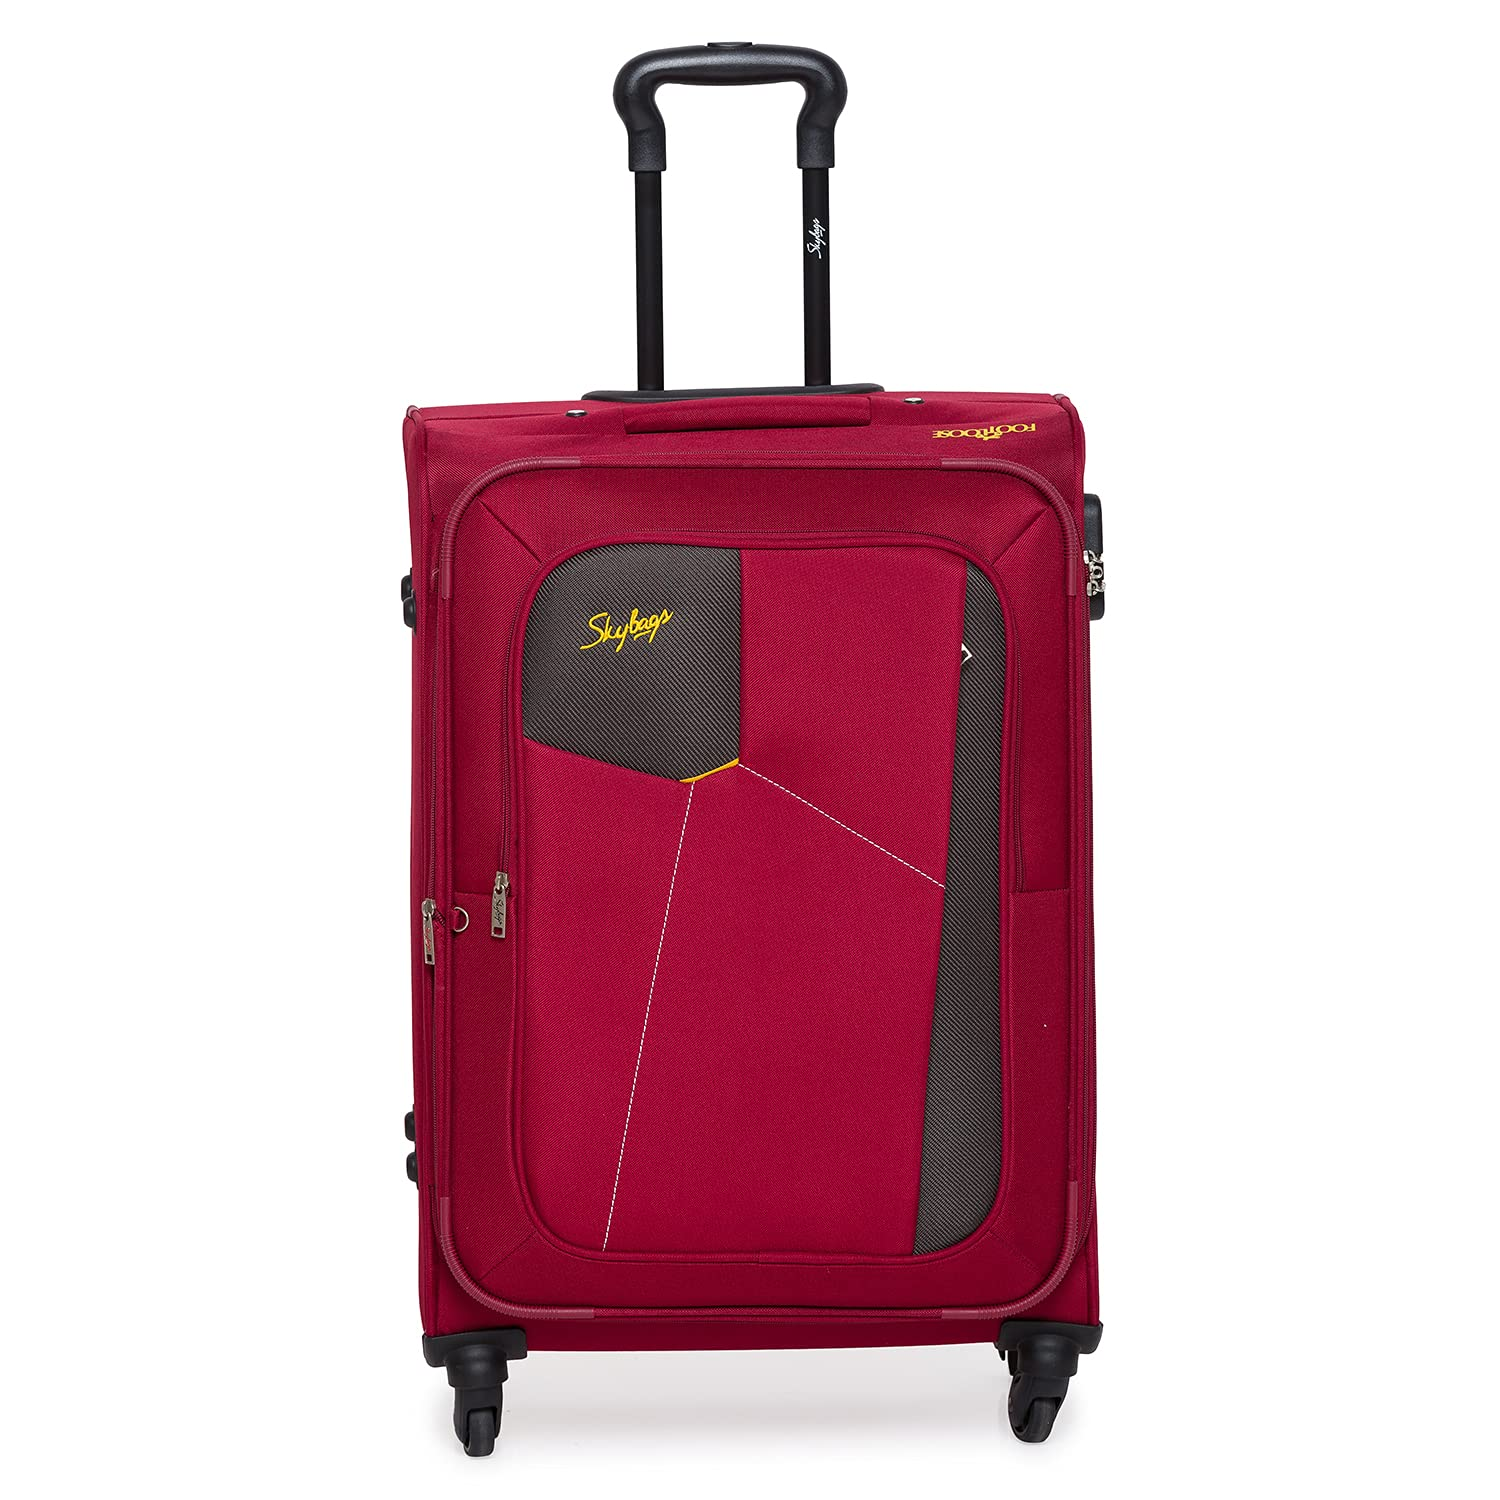 Skybags Polyester 68 Cms Check-in Luggage $44.31 Coupon